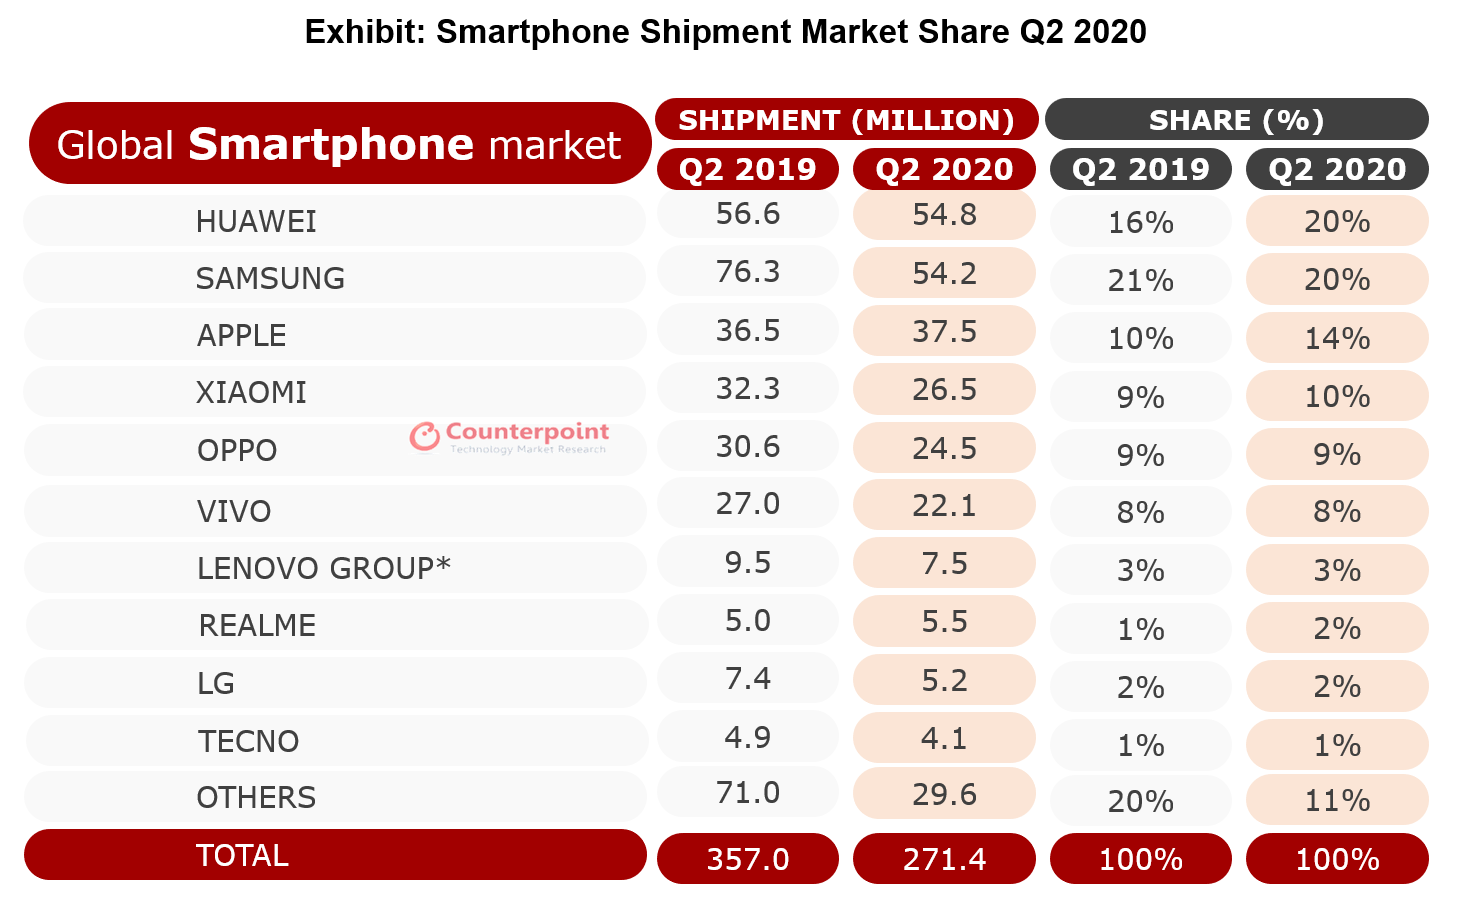 Counterpoint Global Smartphone Shipment Market Share Q2 2020